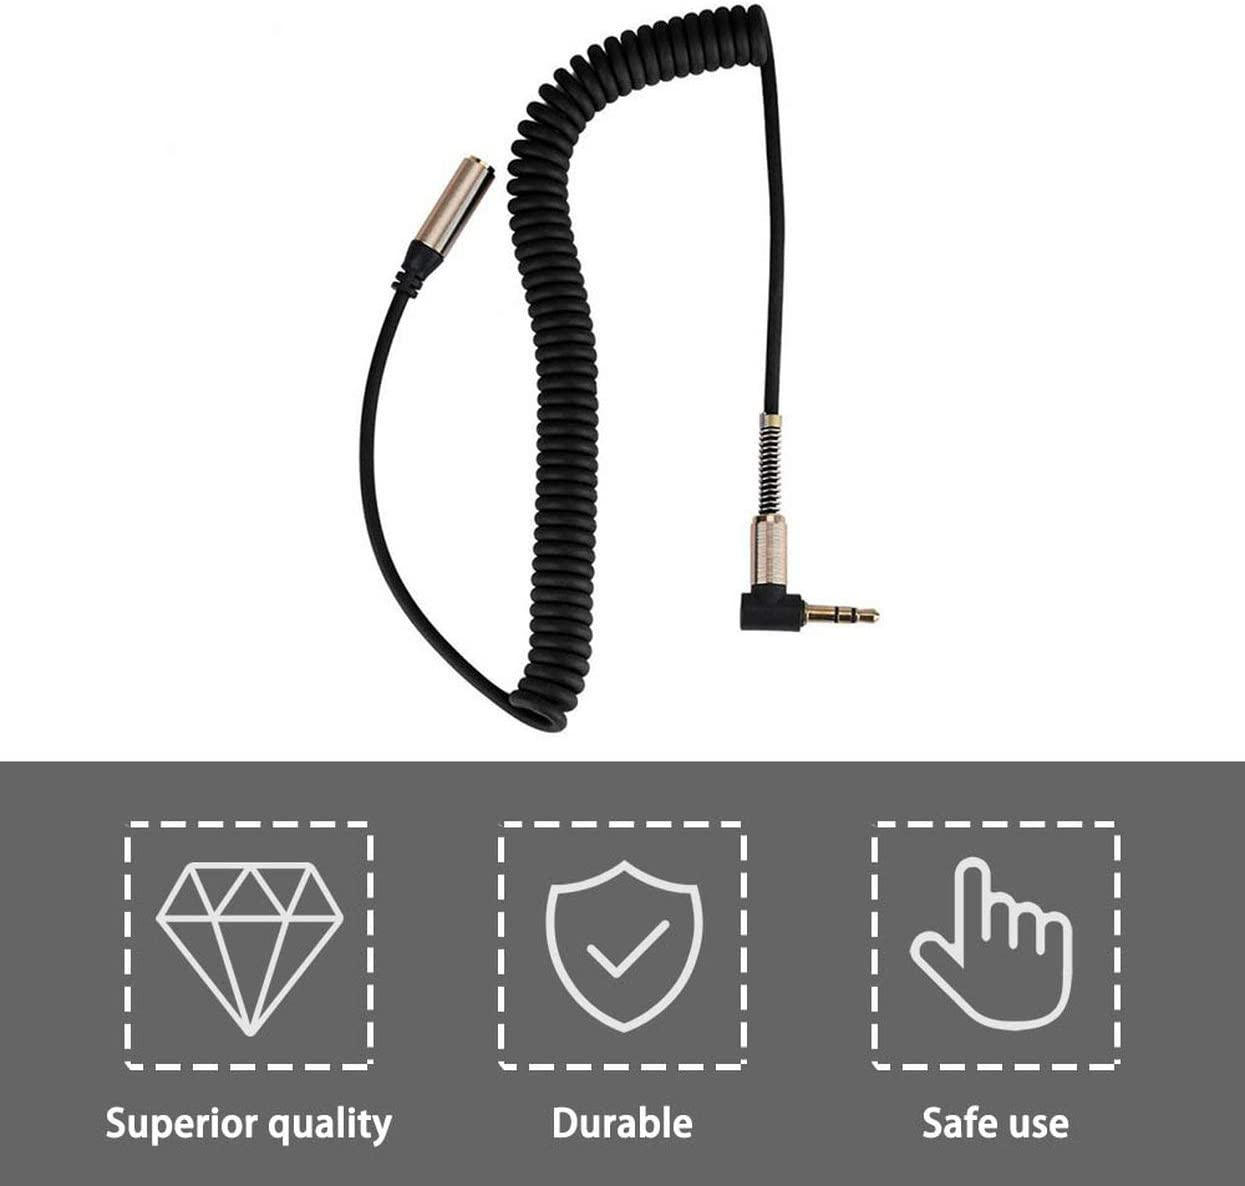 Detectorcatty 3.5mm Jack Male to Female Cable Earphone Headphone Audio Extension Cable Extendable Flexible Spring Cord Portable Audio Cable